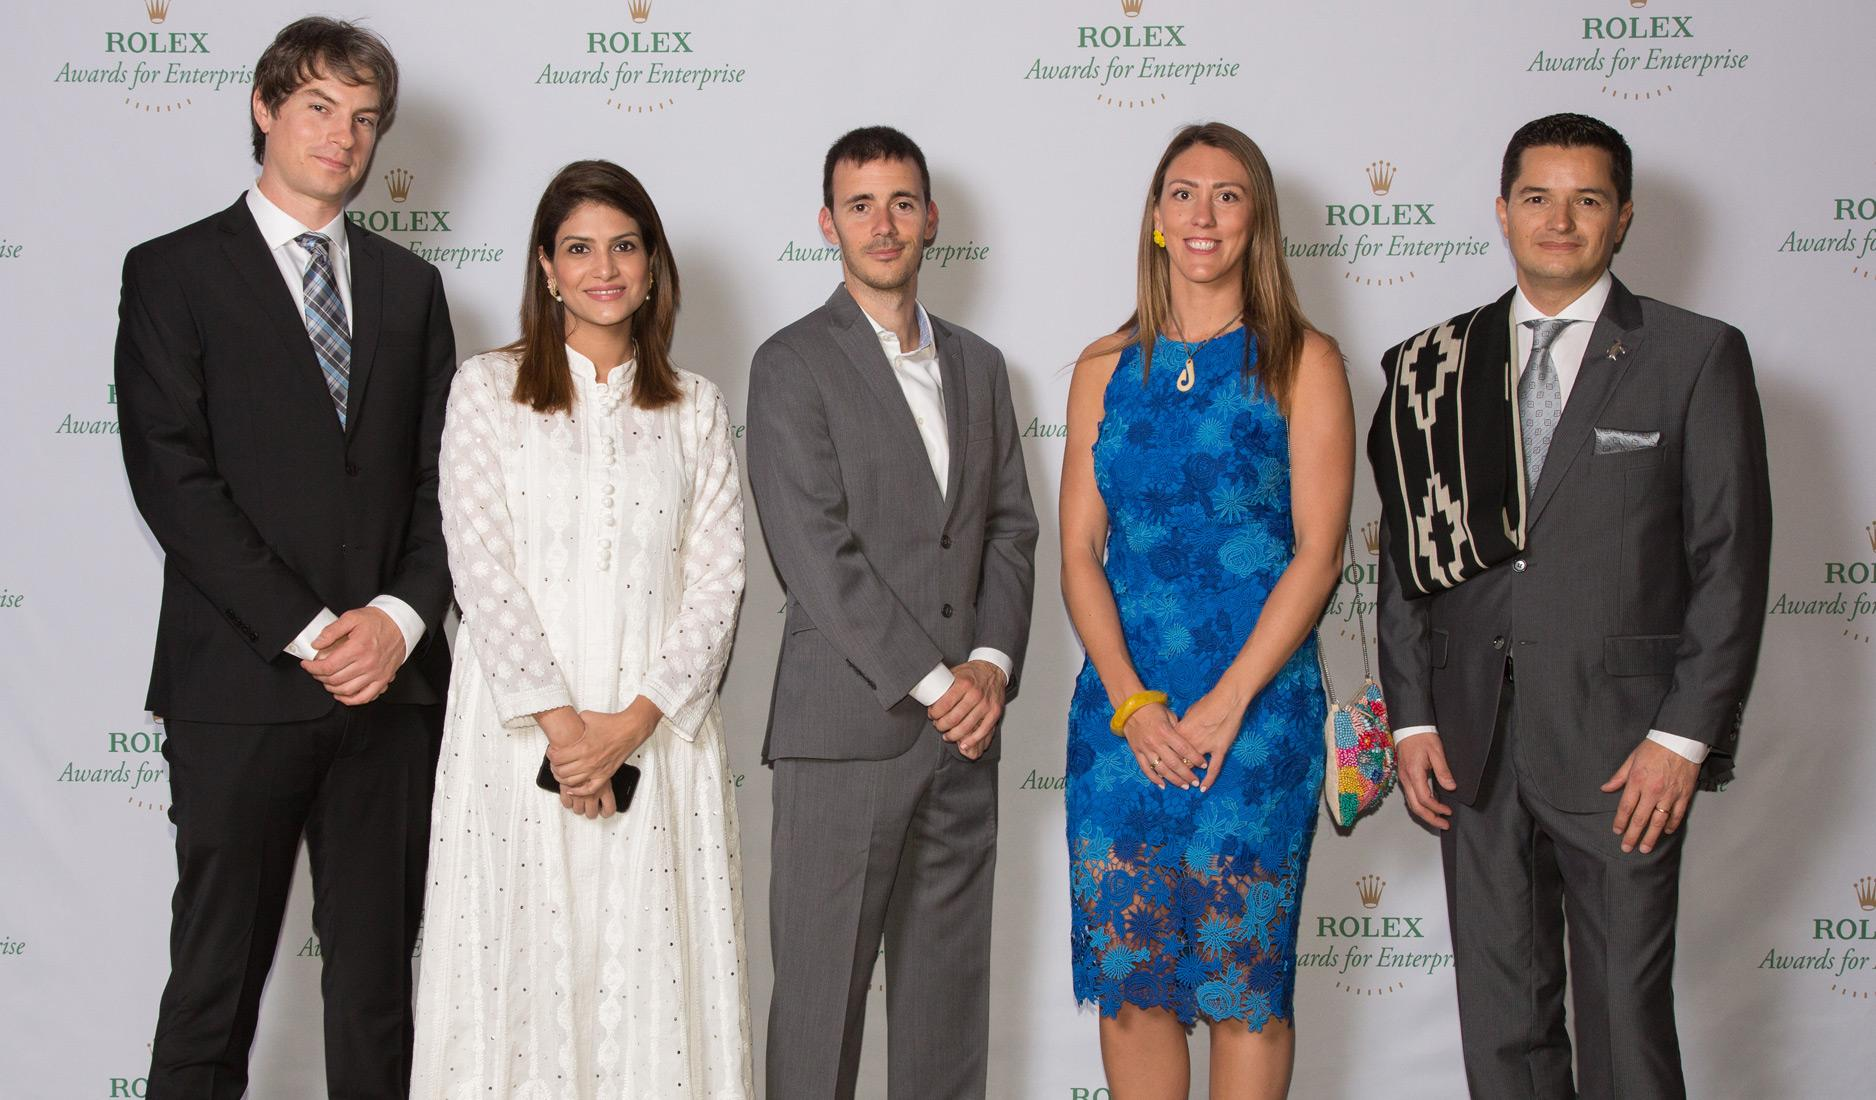 Laureates for the 2019 Rolex Awards for Enterprise